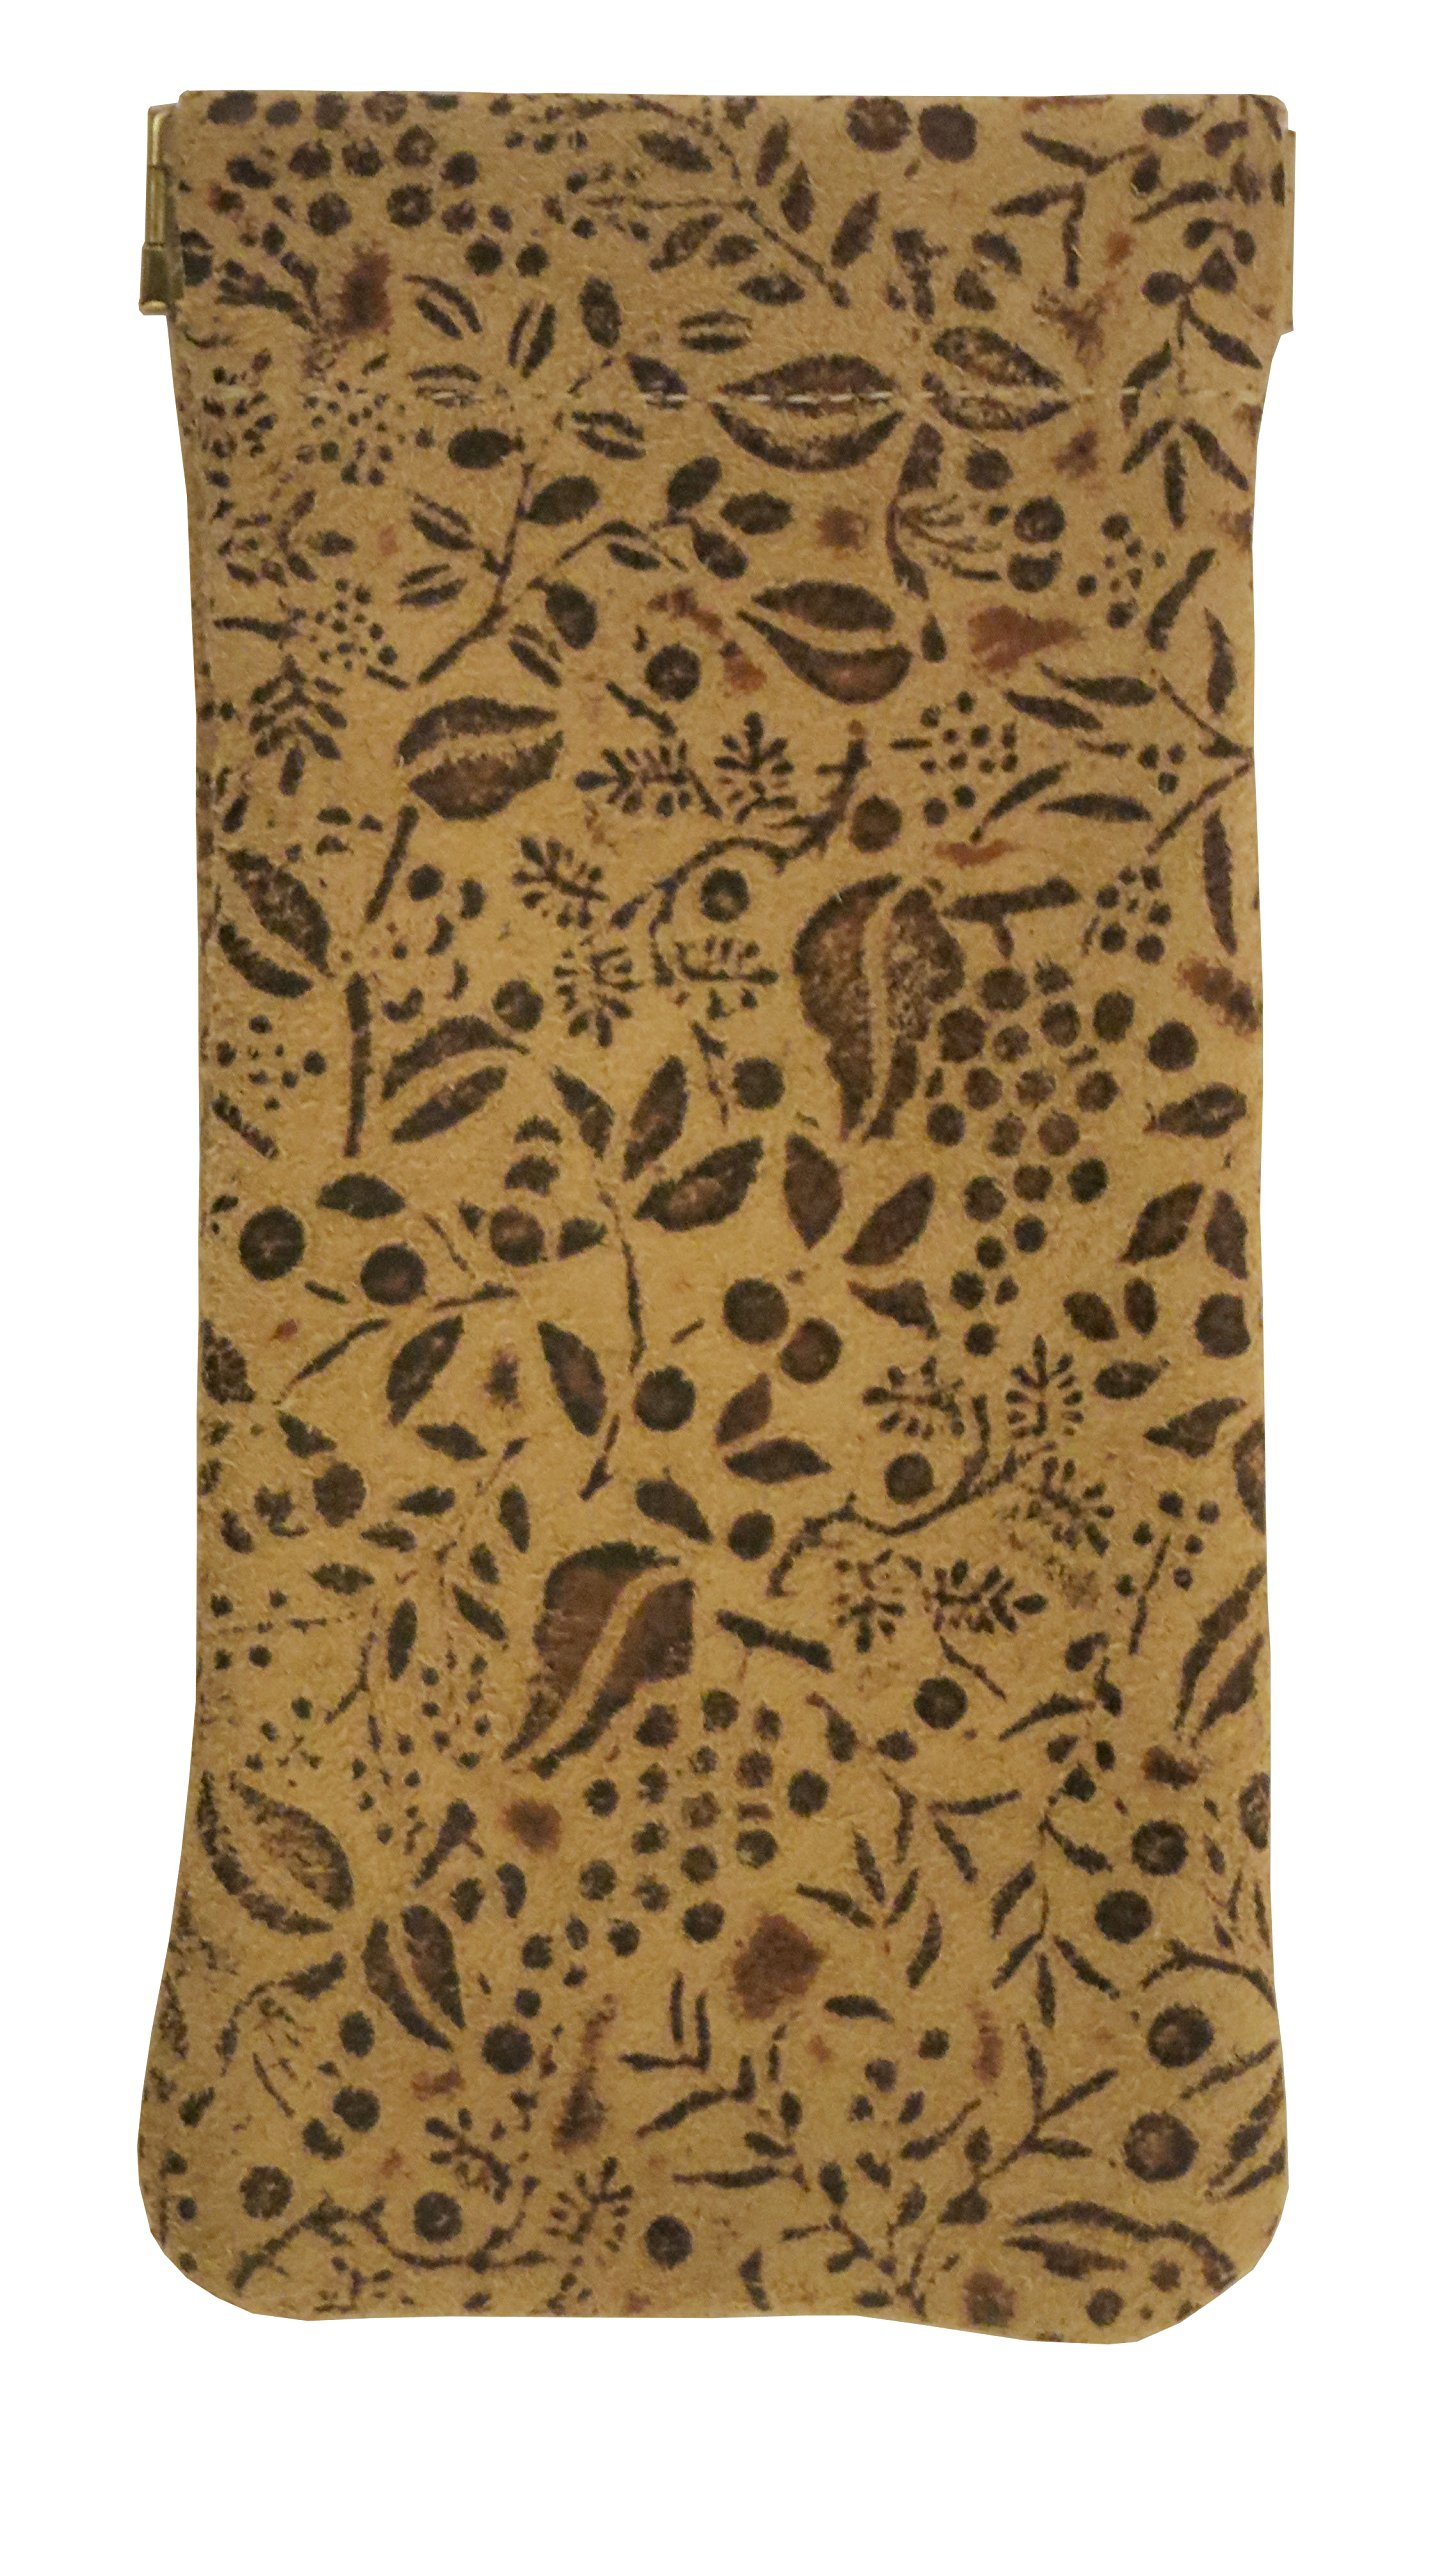 CTM Unisex Leather Eyeglass Holder and Case, Tan Floral